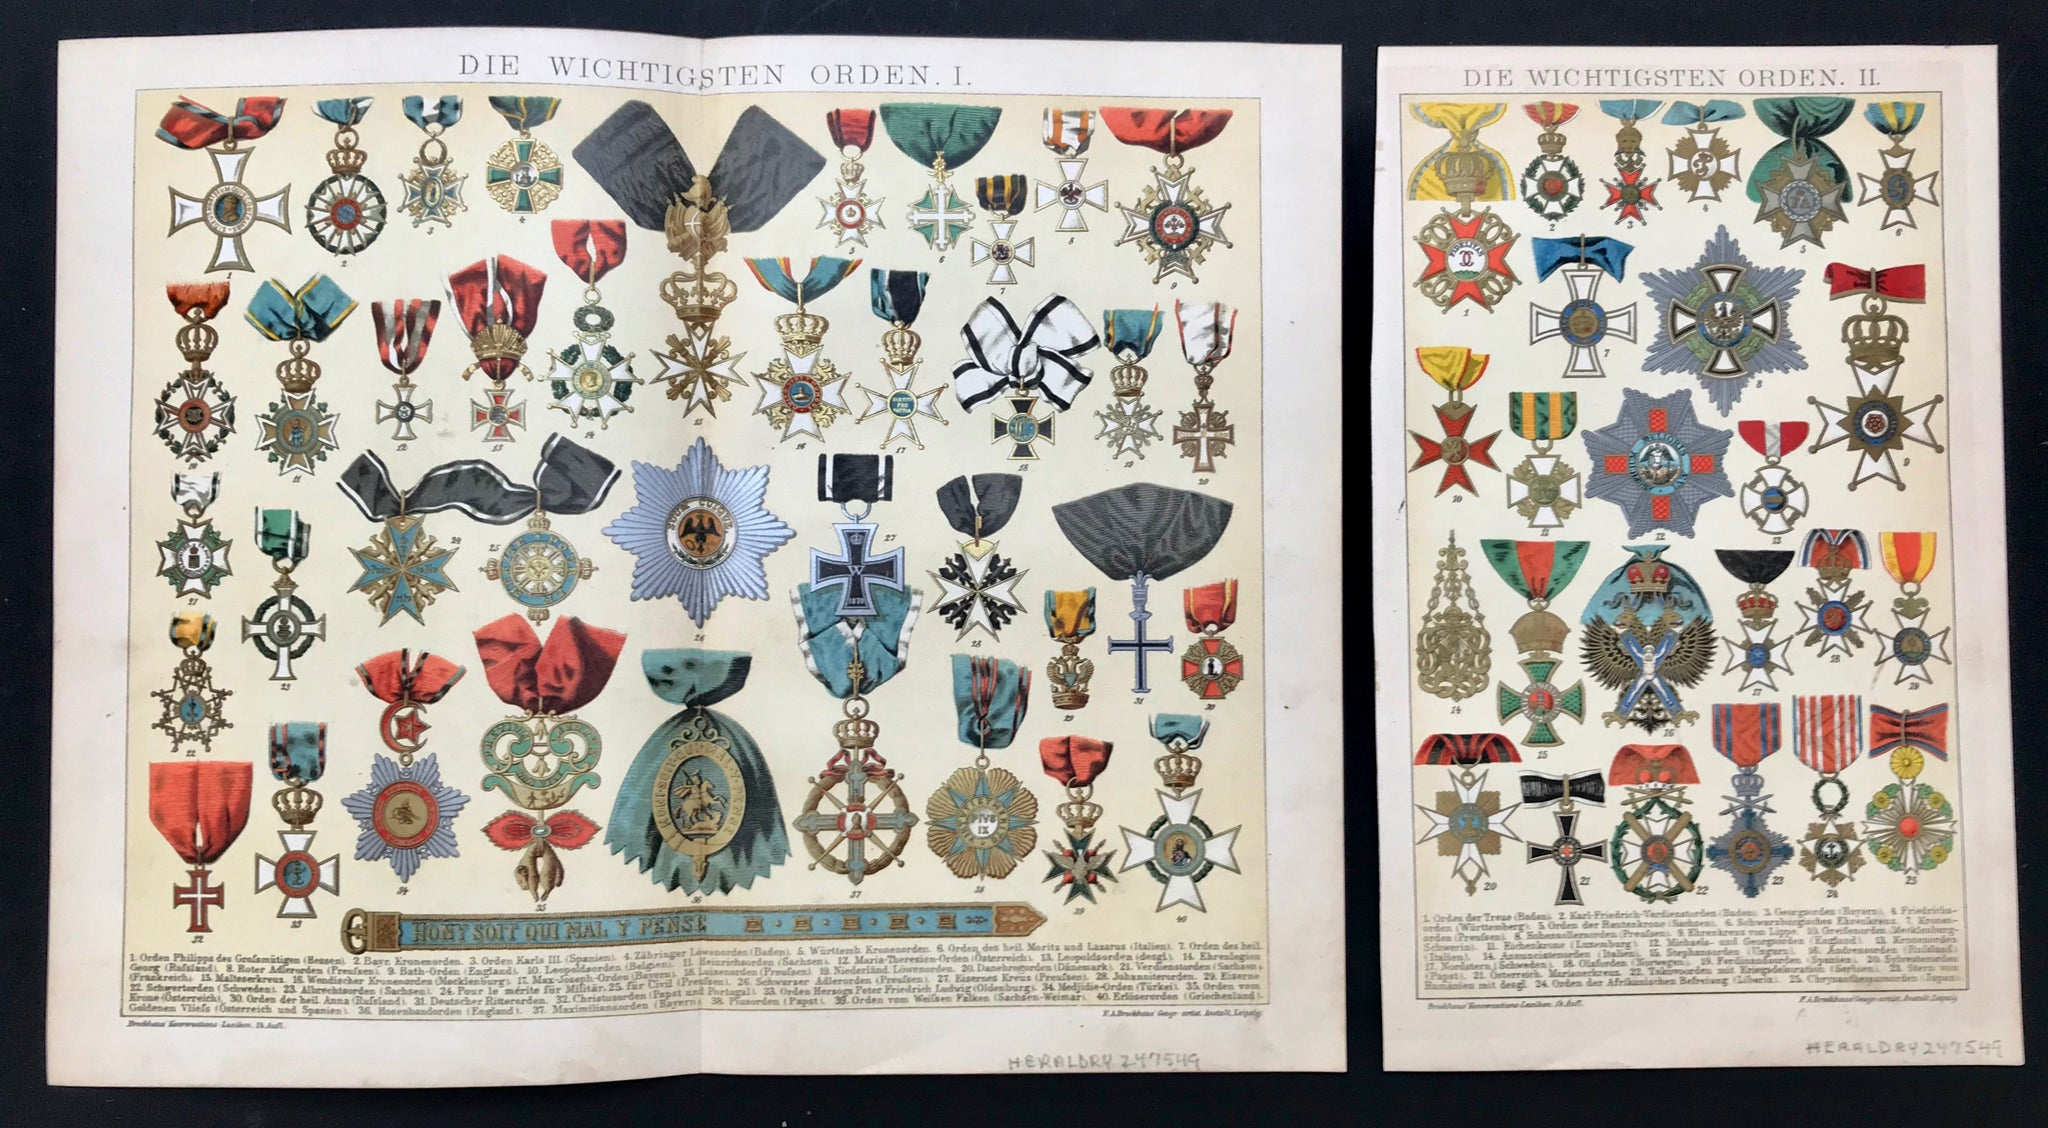 """Die Wichtigsten Orden I"" ( the most important medals, awards )  ******  Second Page:  ""Die Wichtigsten Ordern II"" ( the most importan medals, awards )  Two pages ( one double page and one single page ) showing some of the most important medals and awards given. Below the medals are the numbered names of each medal."